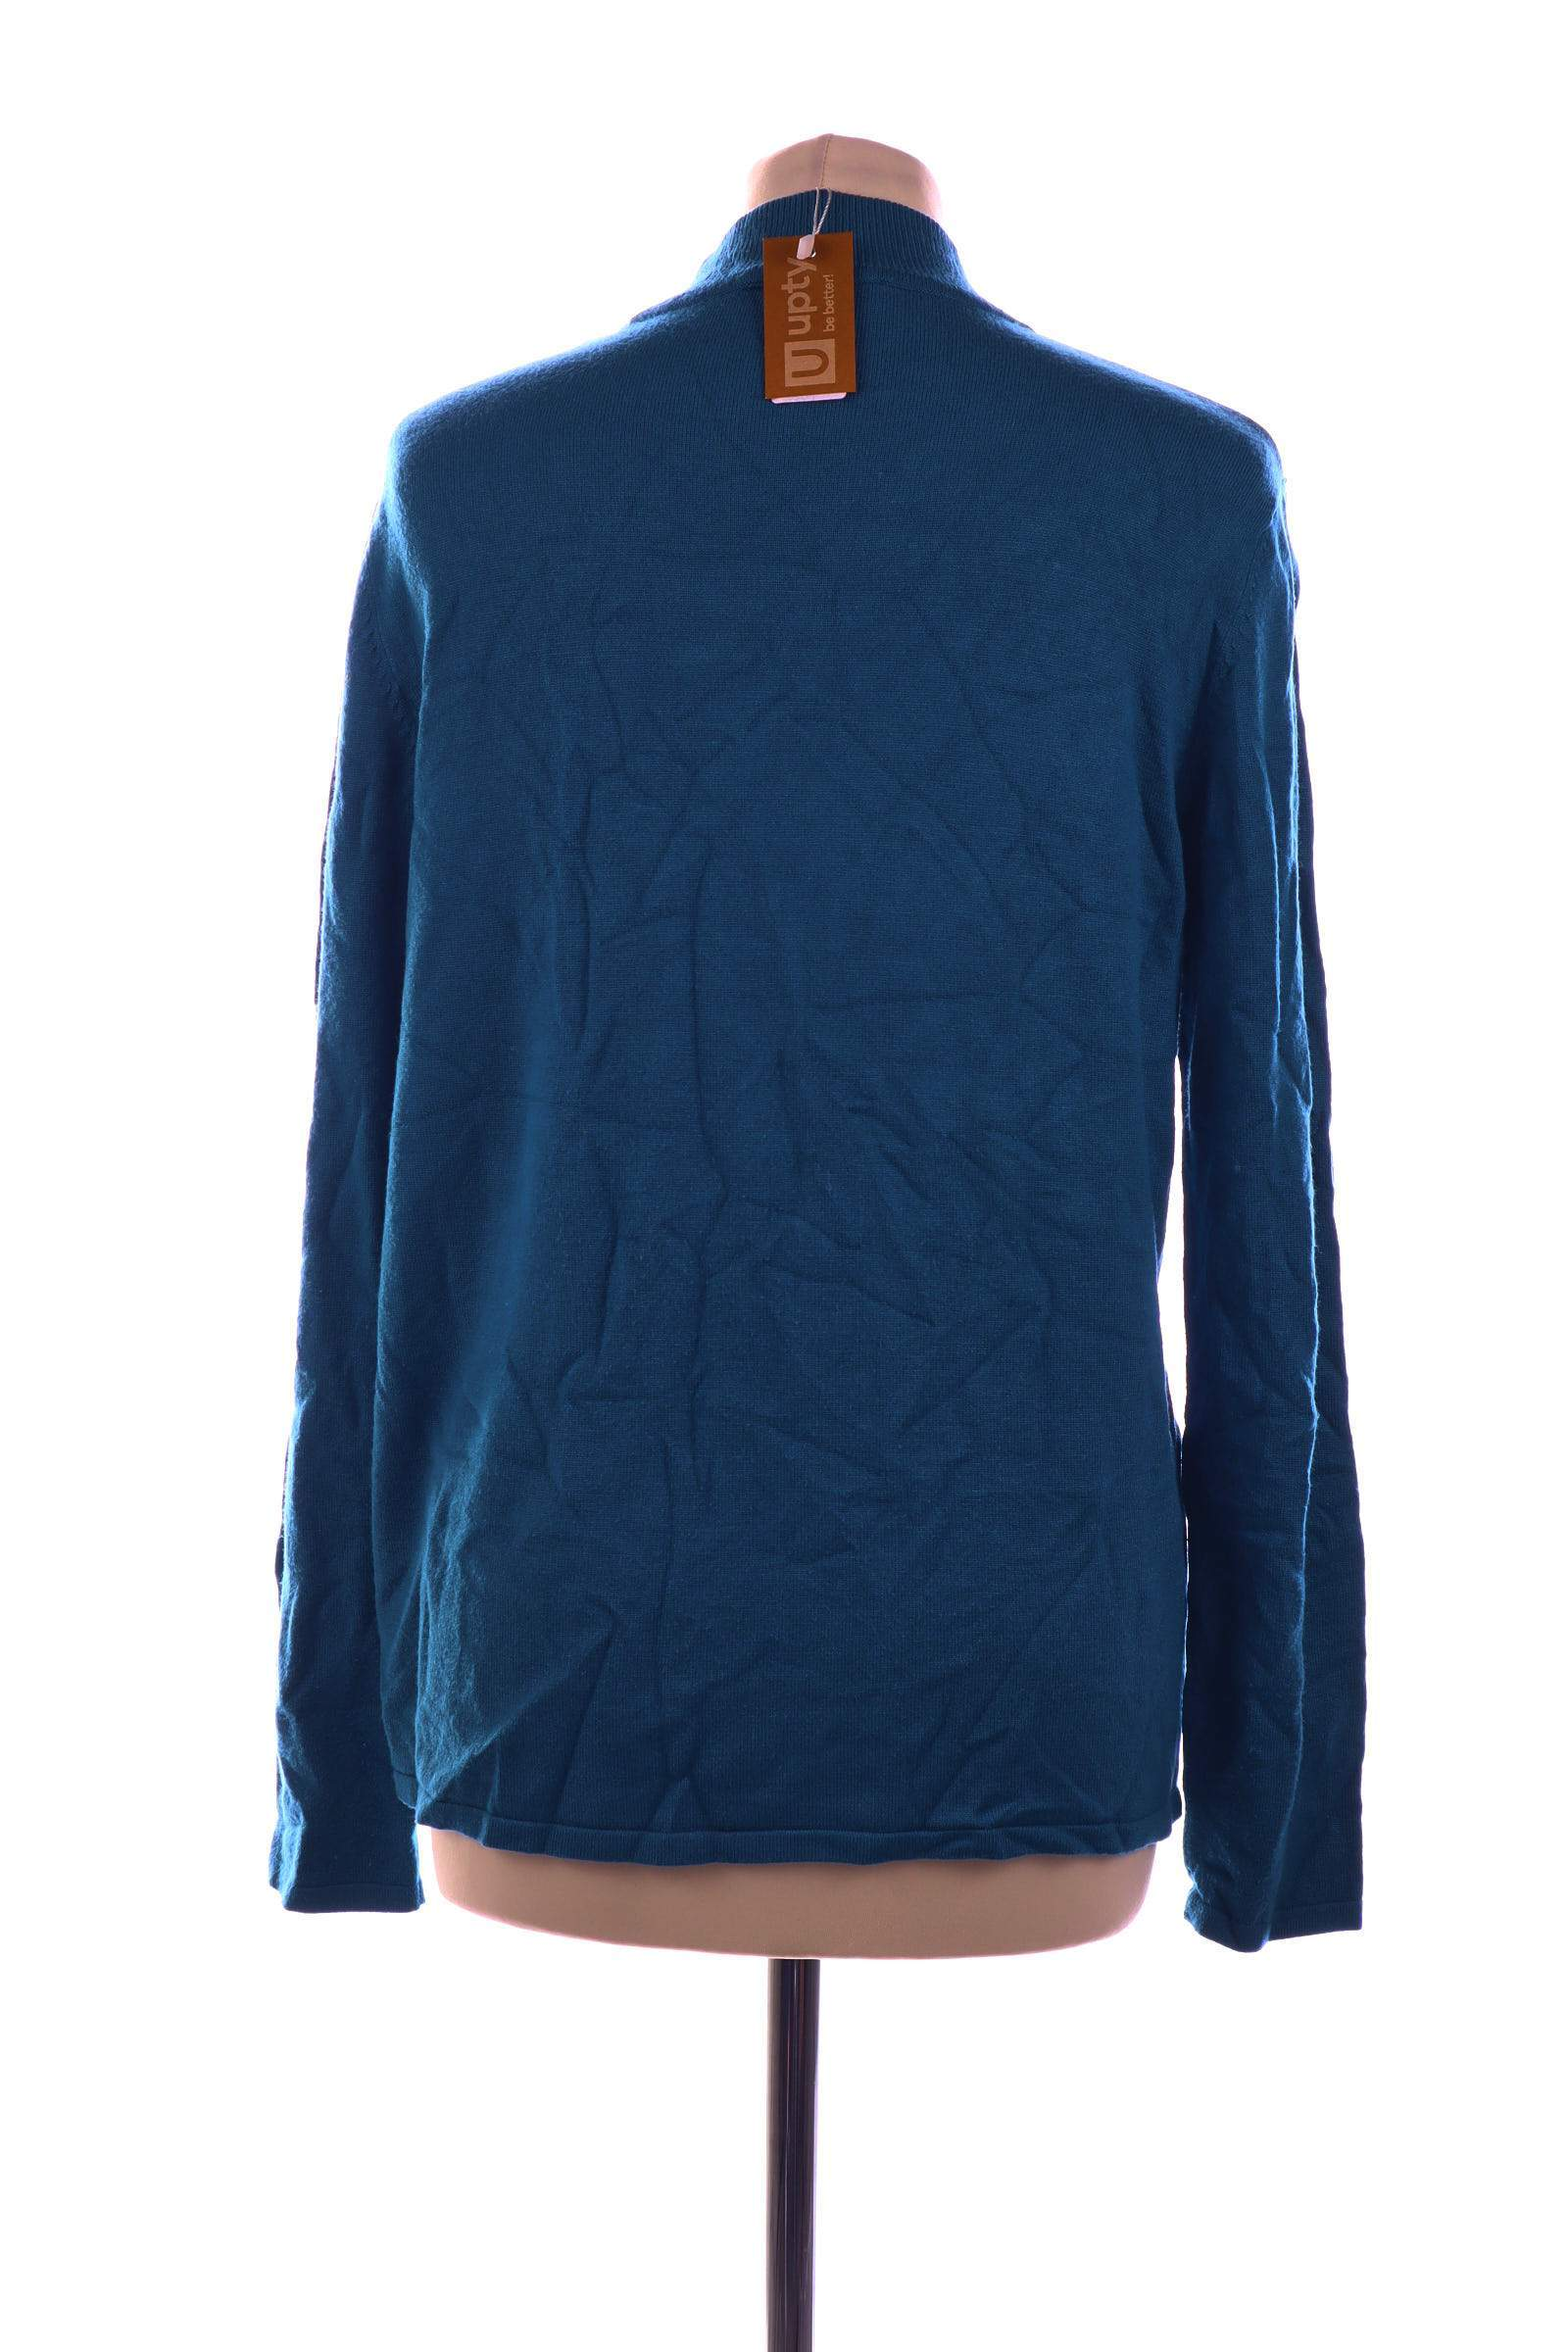 August Silk Blue Sweater - upty.store